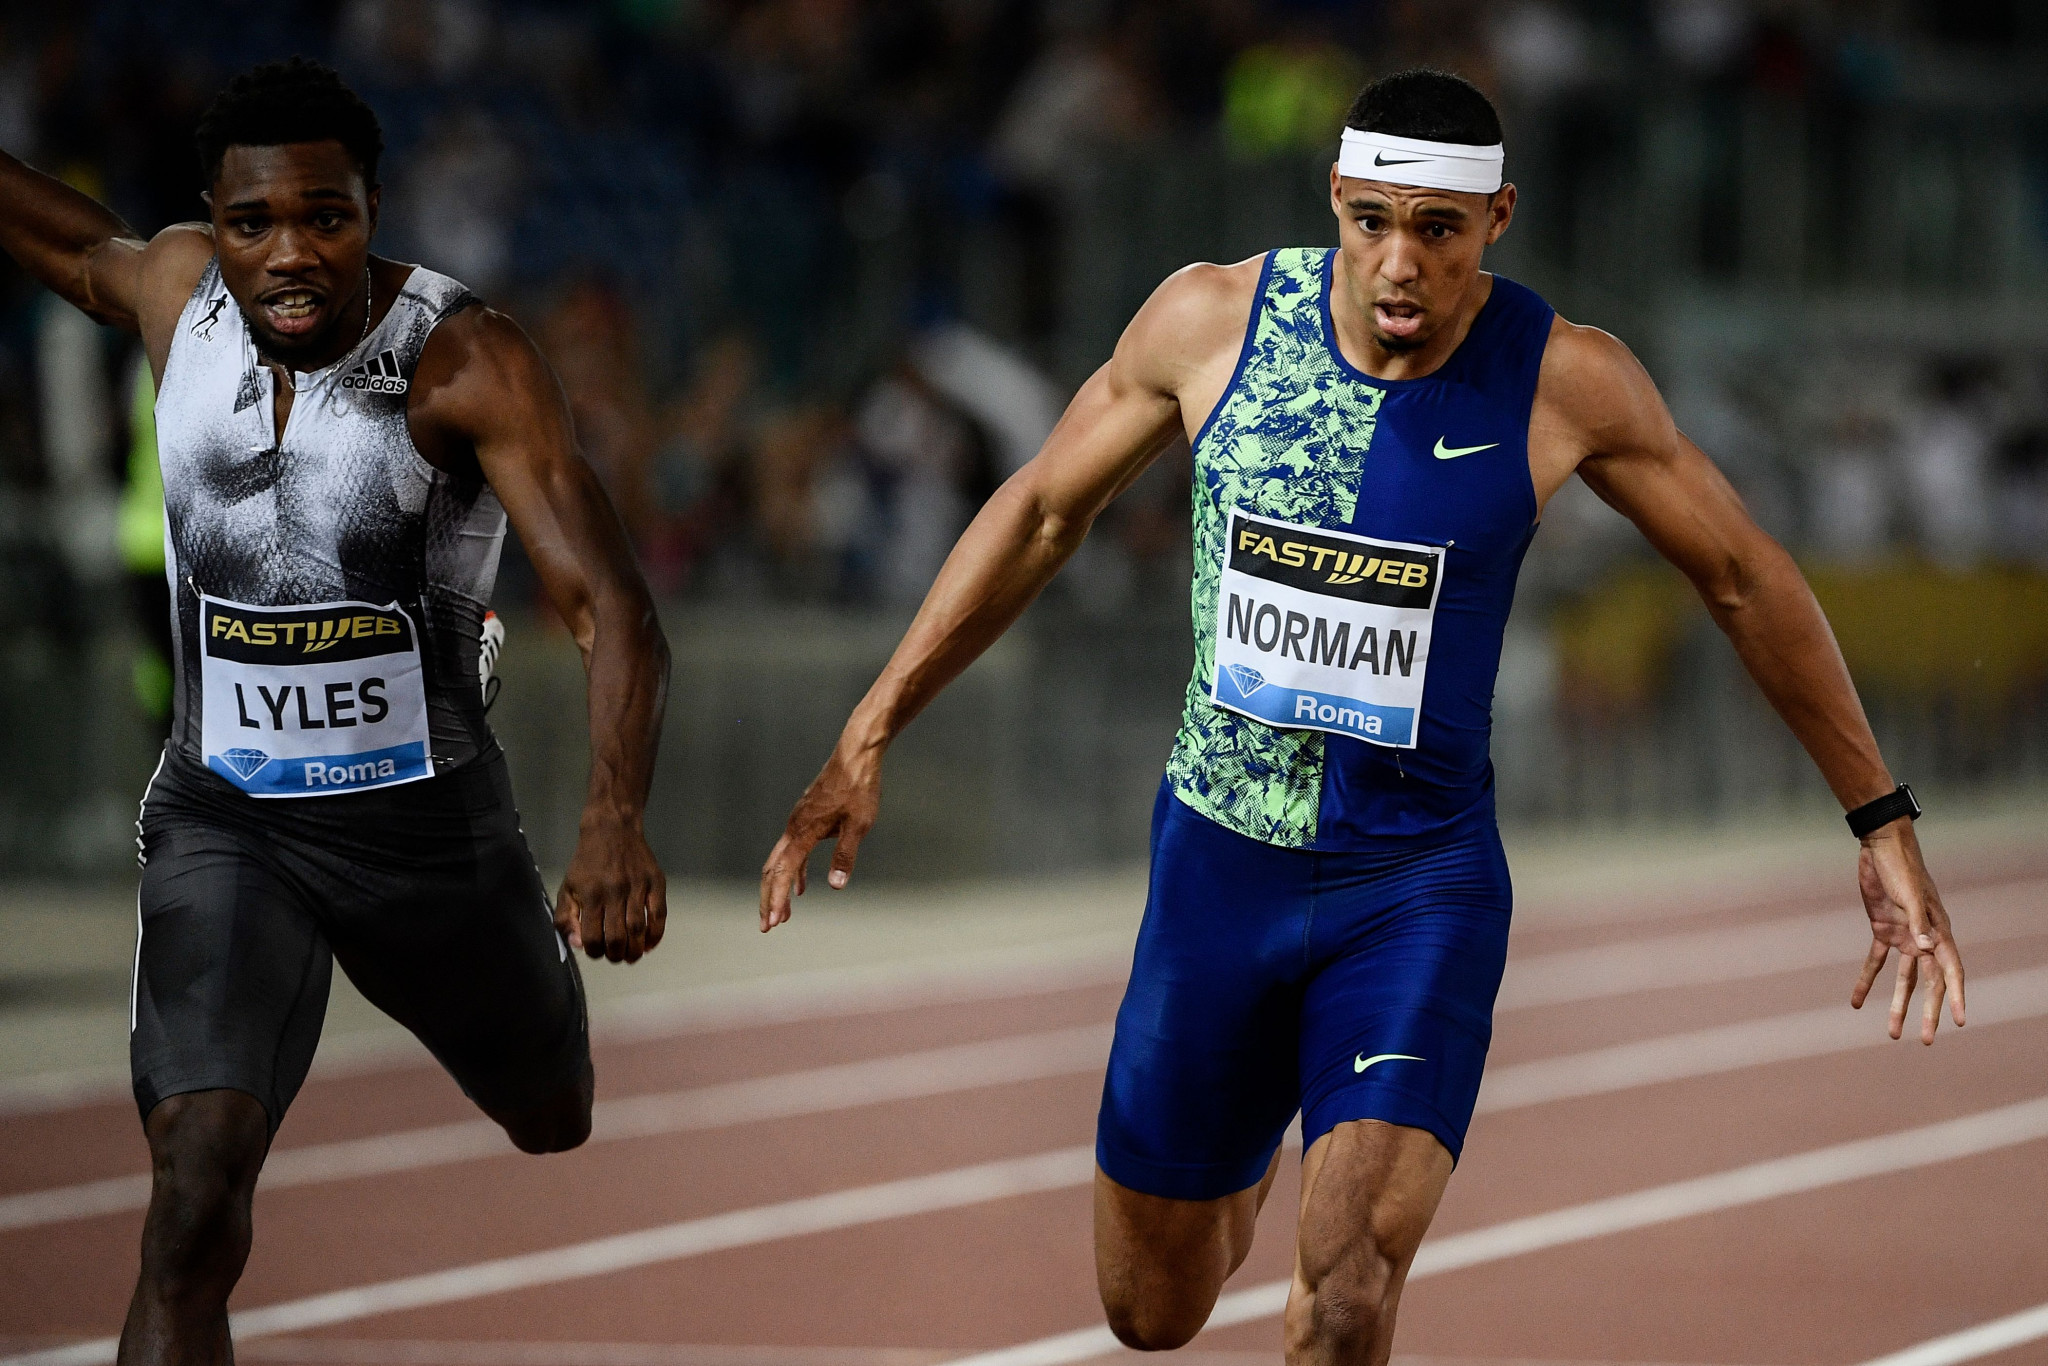 Norman wins super-fast 200m duel with Lyles at Rome Diamond League meeting